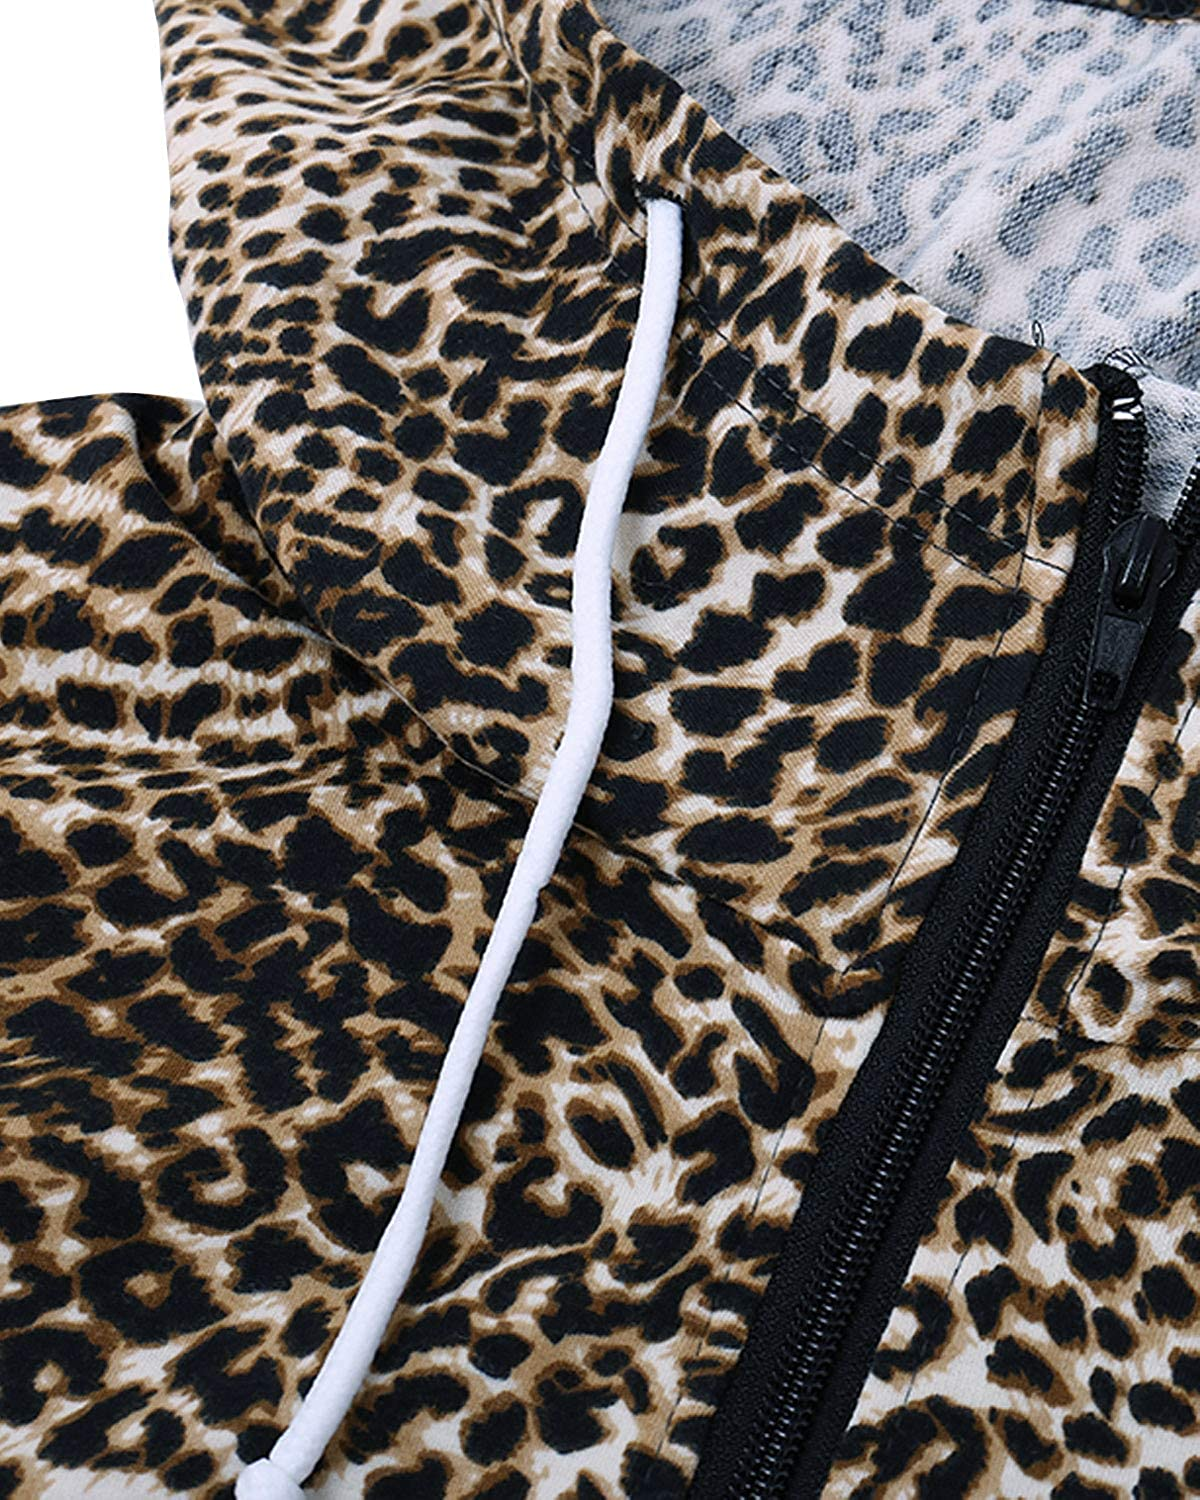 SOLERSUN Womens Casual Long Sleeve Leopard Hoodies Sweatshirt Zip Color Block Pullover Tops with Pockets